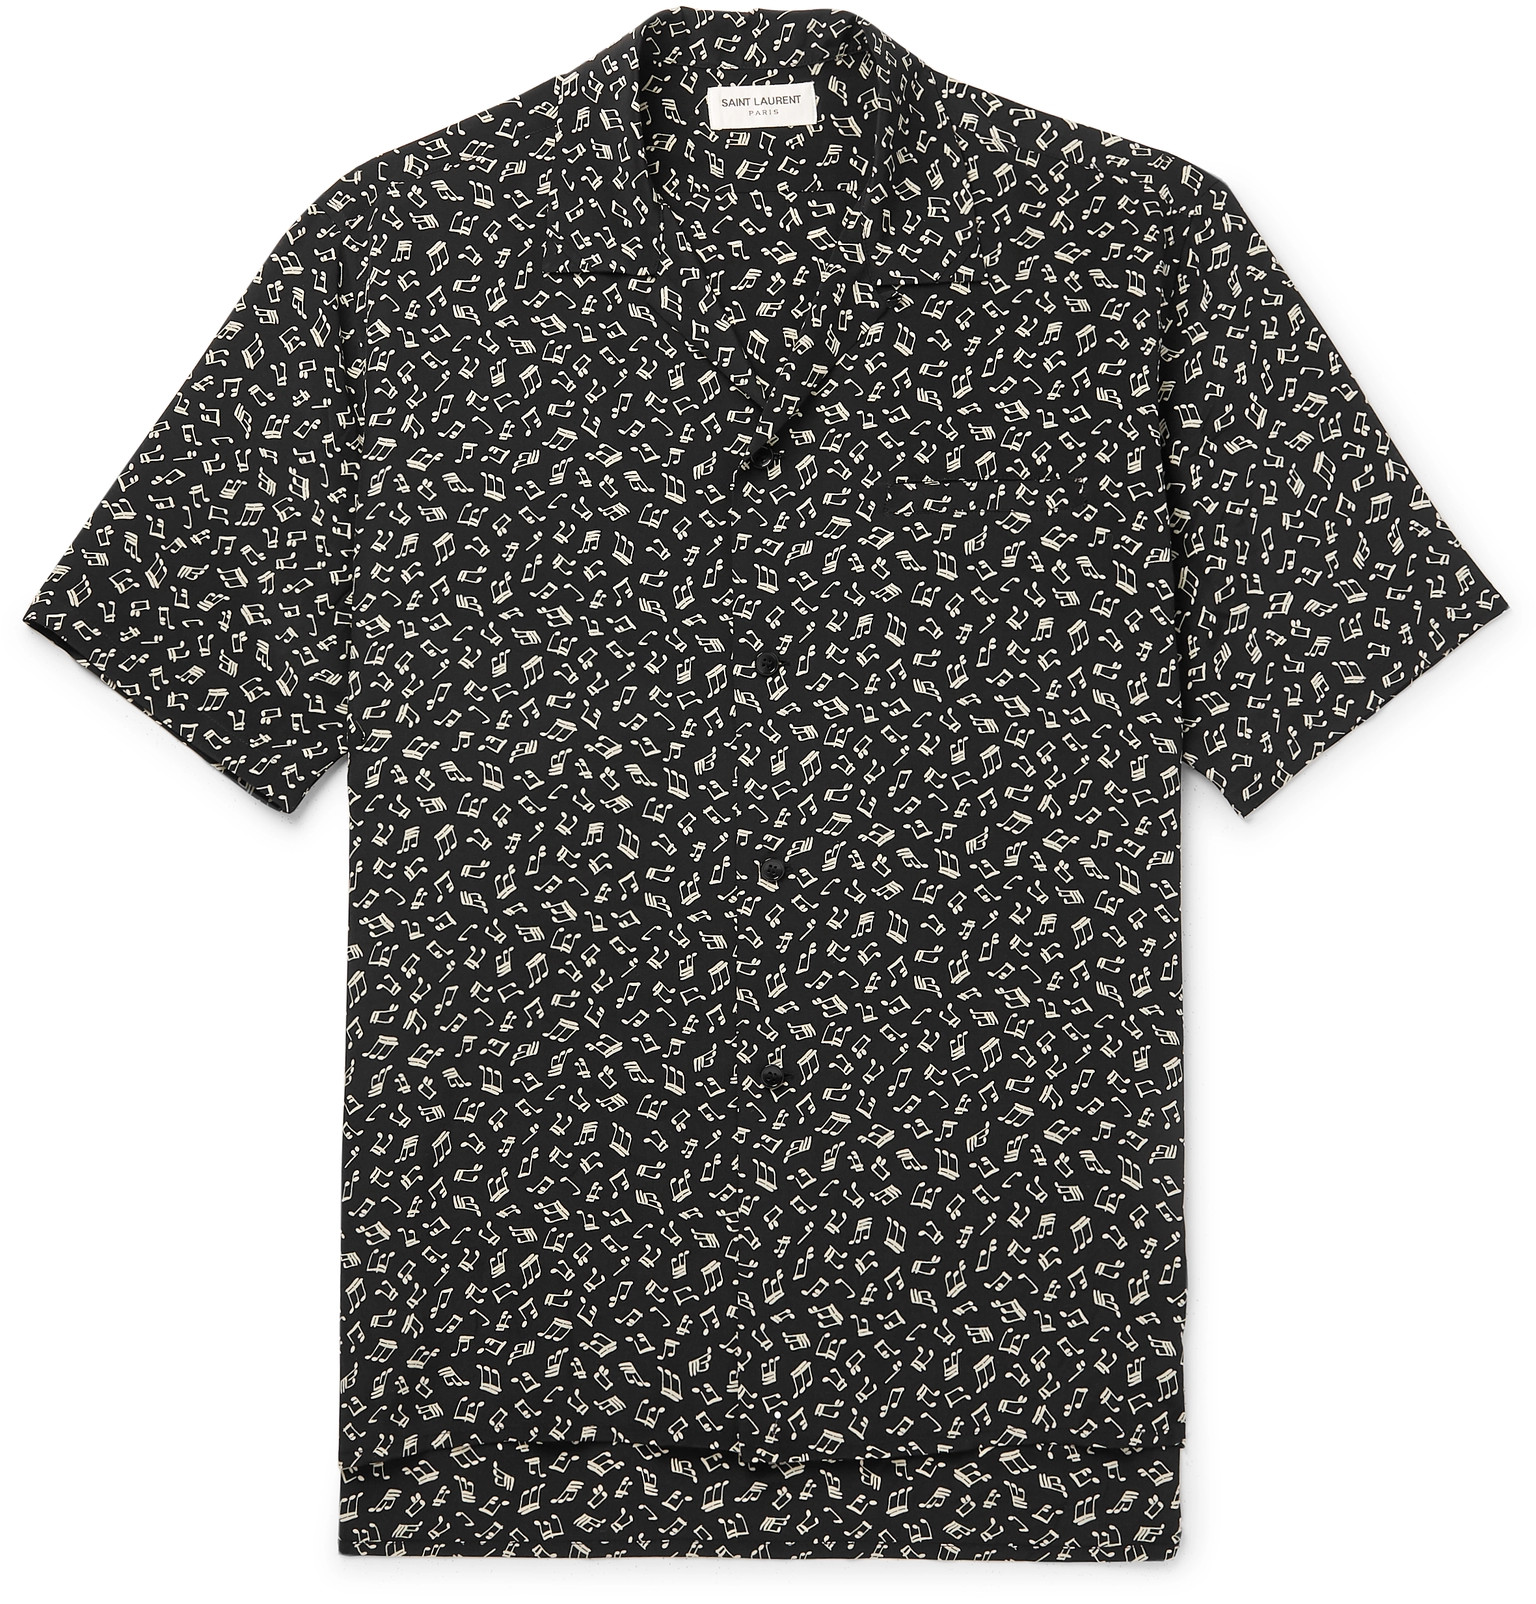 94cab7de SAINT LAURENT - Camp-Collar Printed Silk Crepe De Chine Shirt